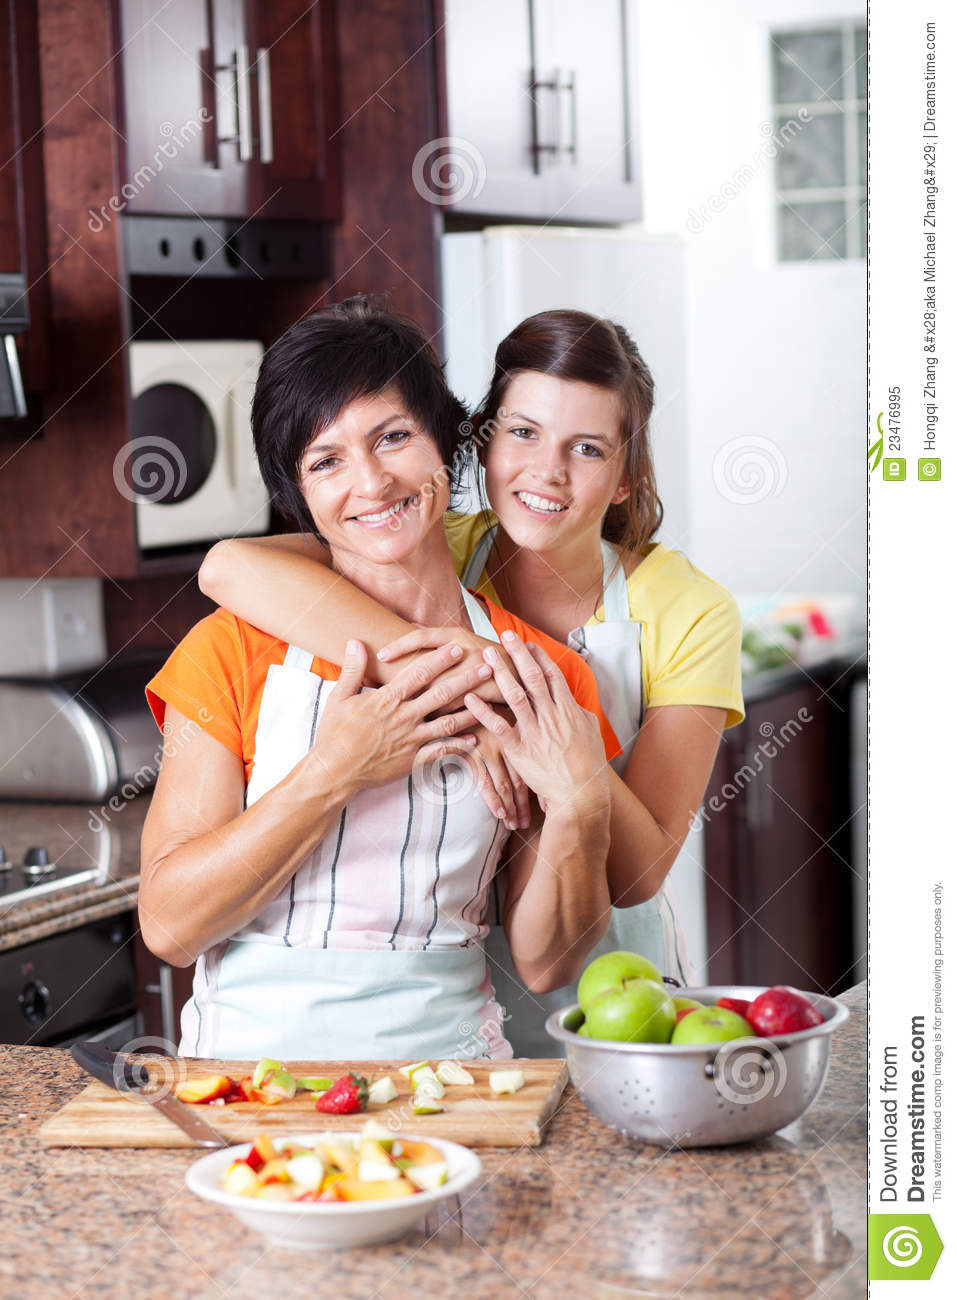 Mother And Teen Daughter Royalty Free Stock Photo - Image